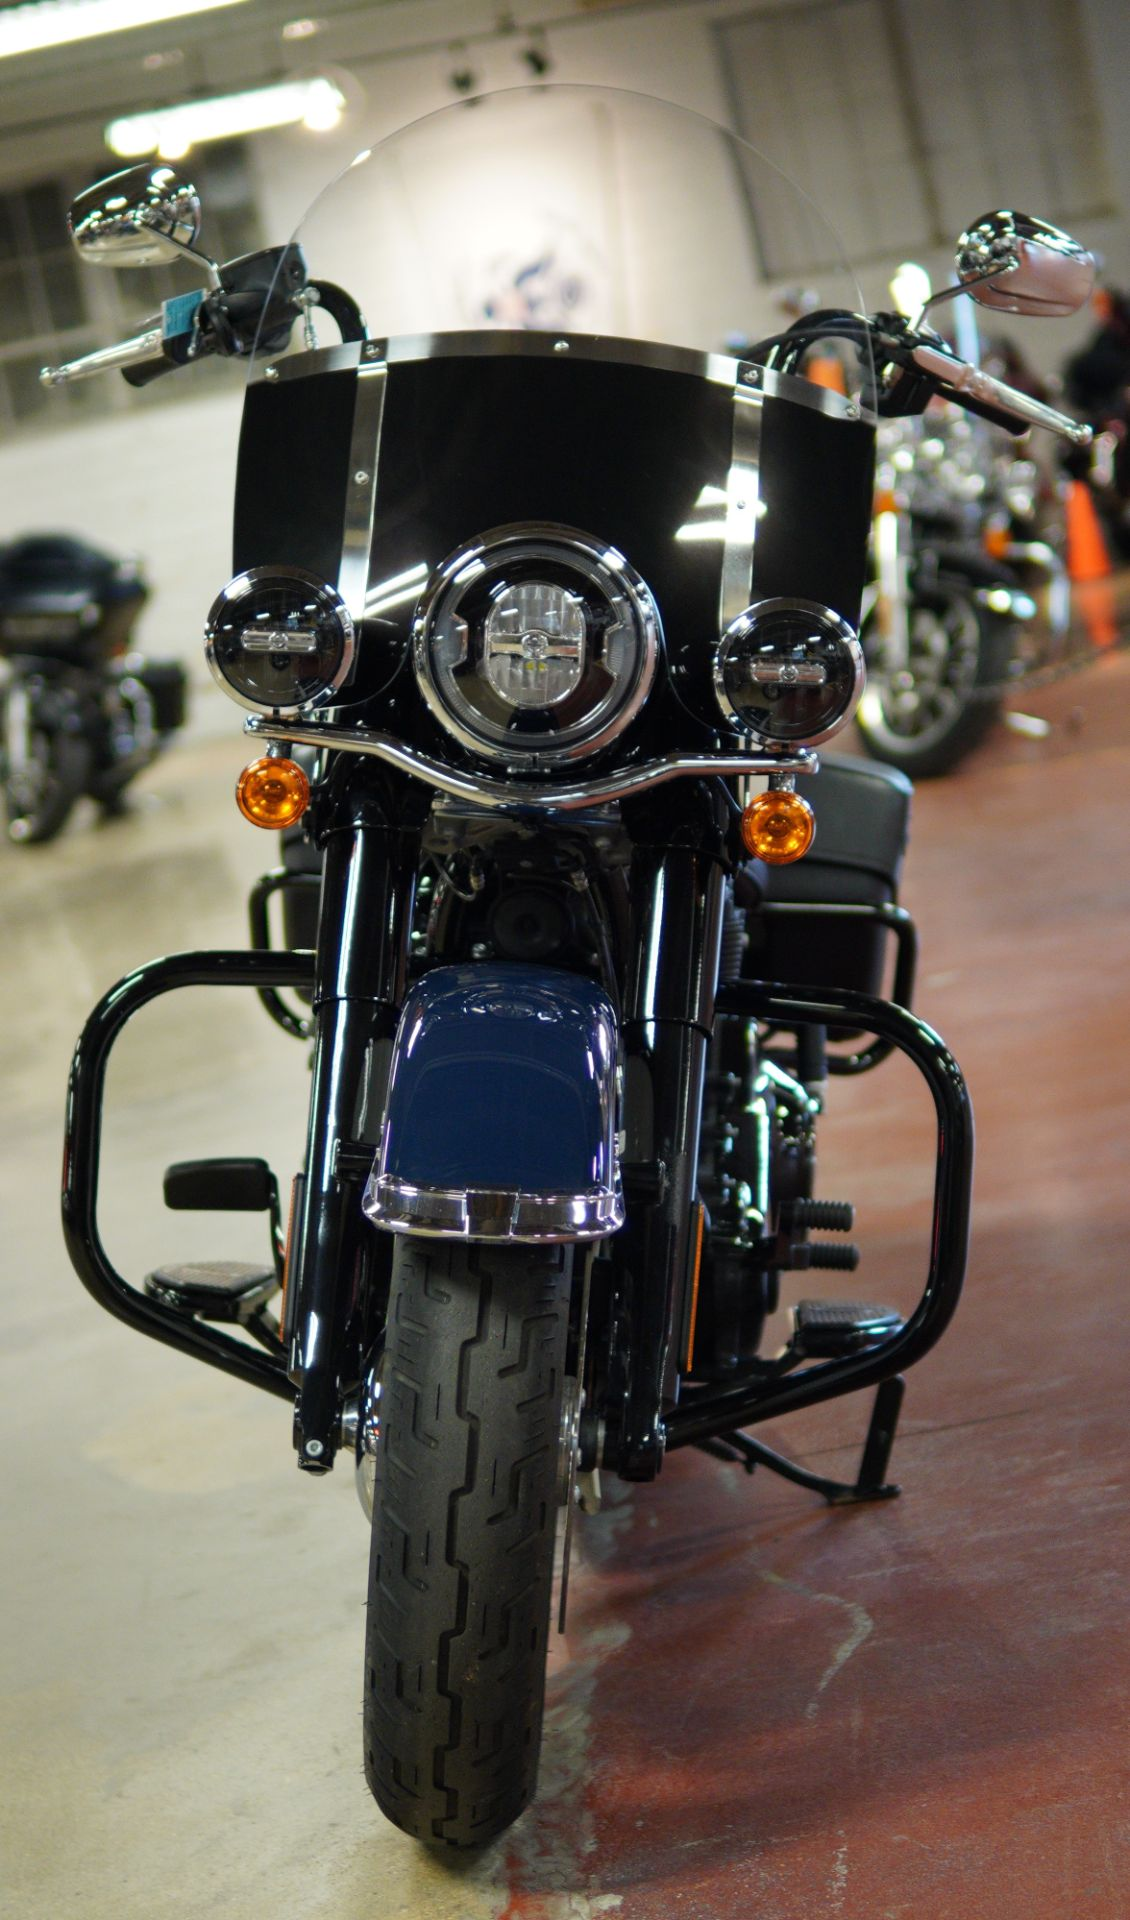 2019 Harley-Davidson Heritage Classic 114 in New London, Connecticut - Photo 3